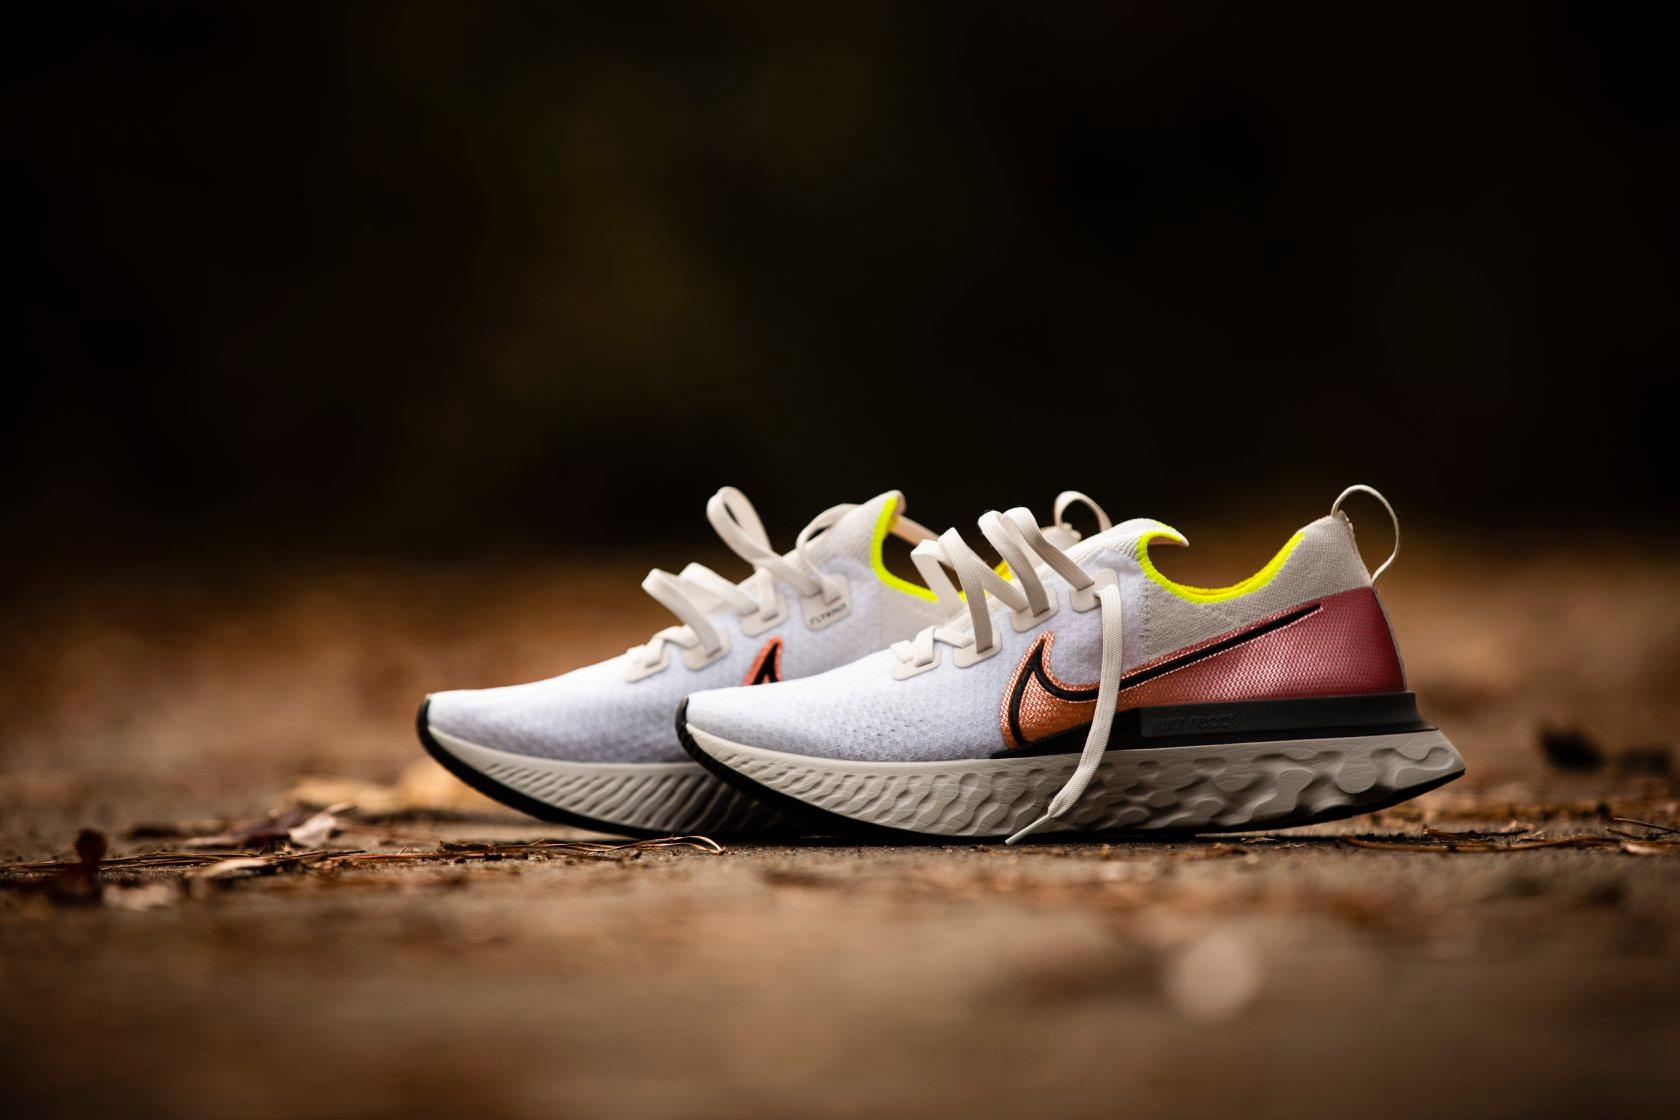 Nike React Infinity Run - Now Available